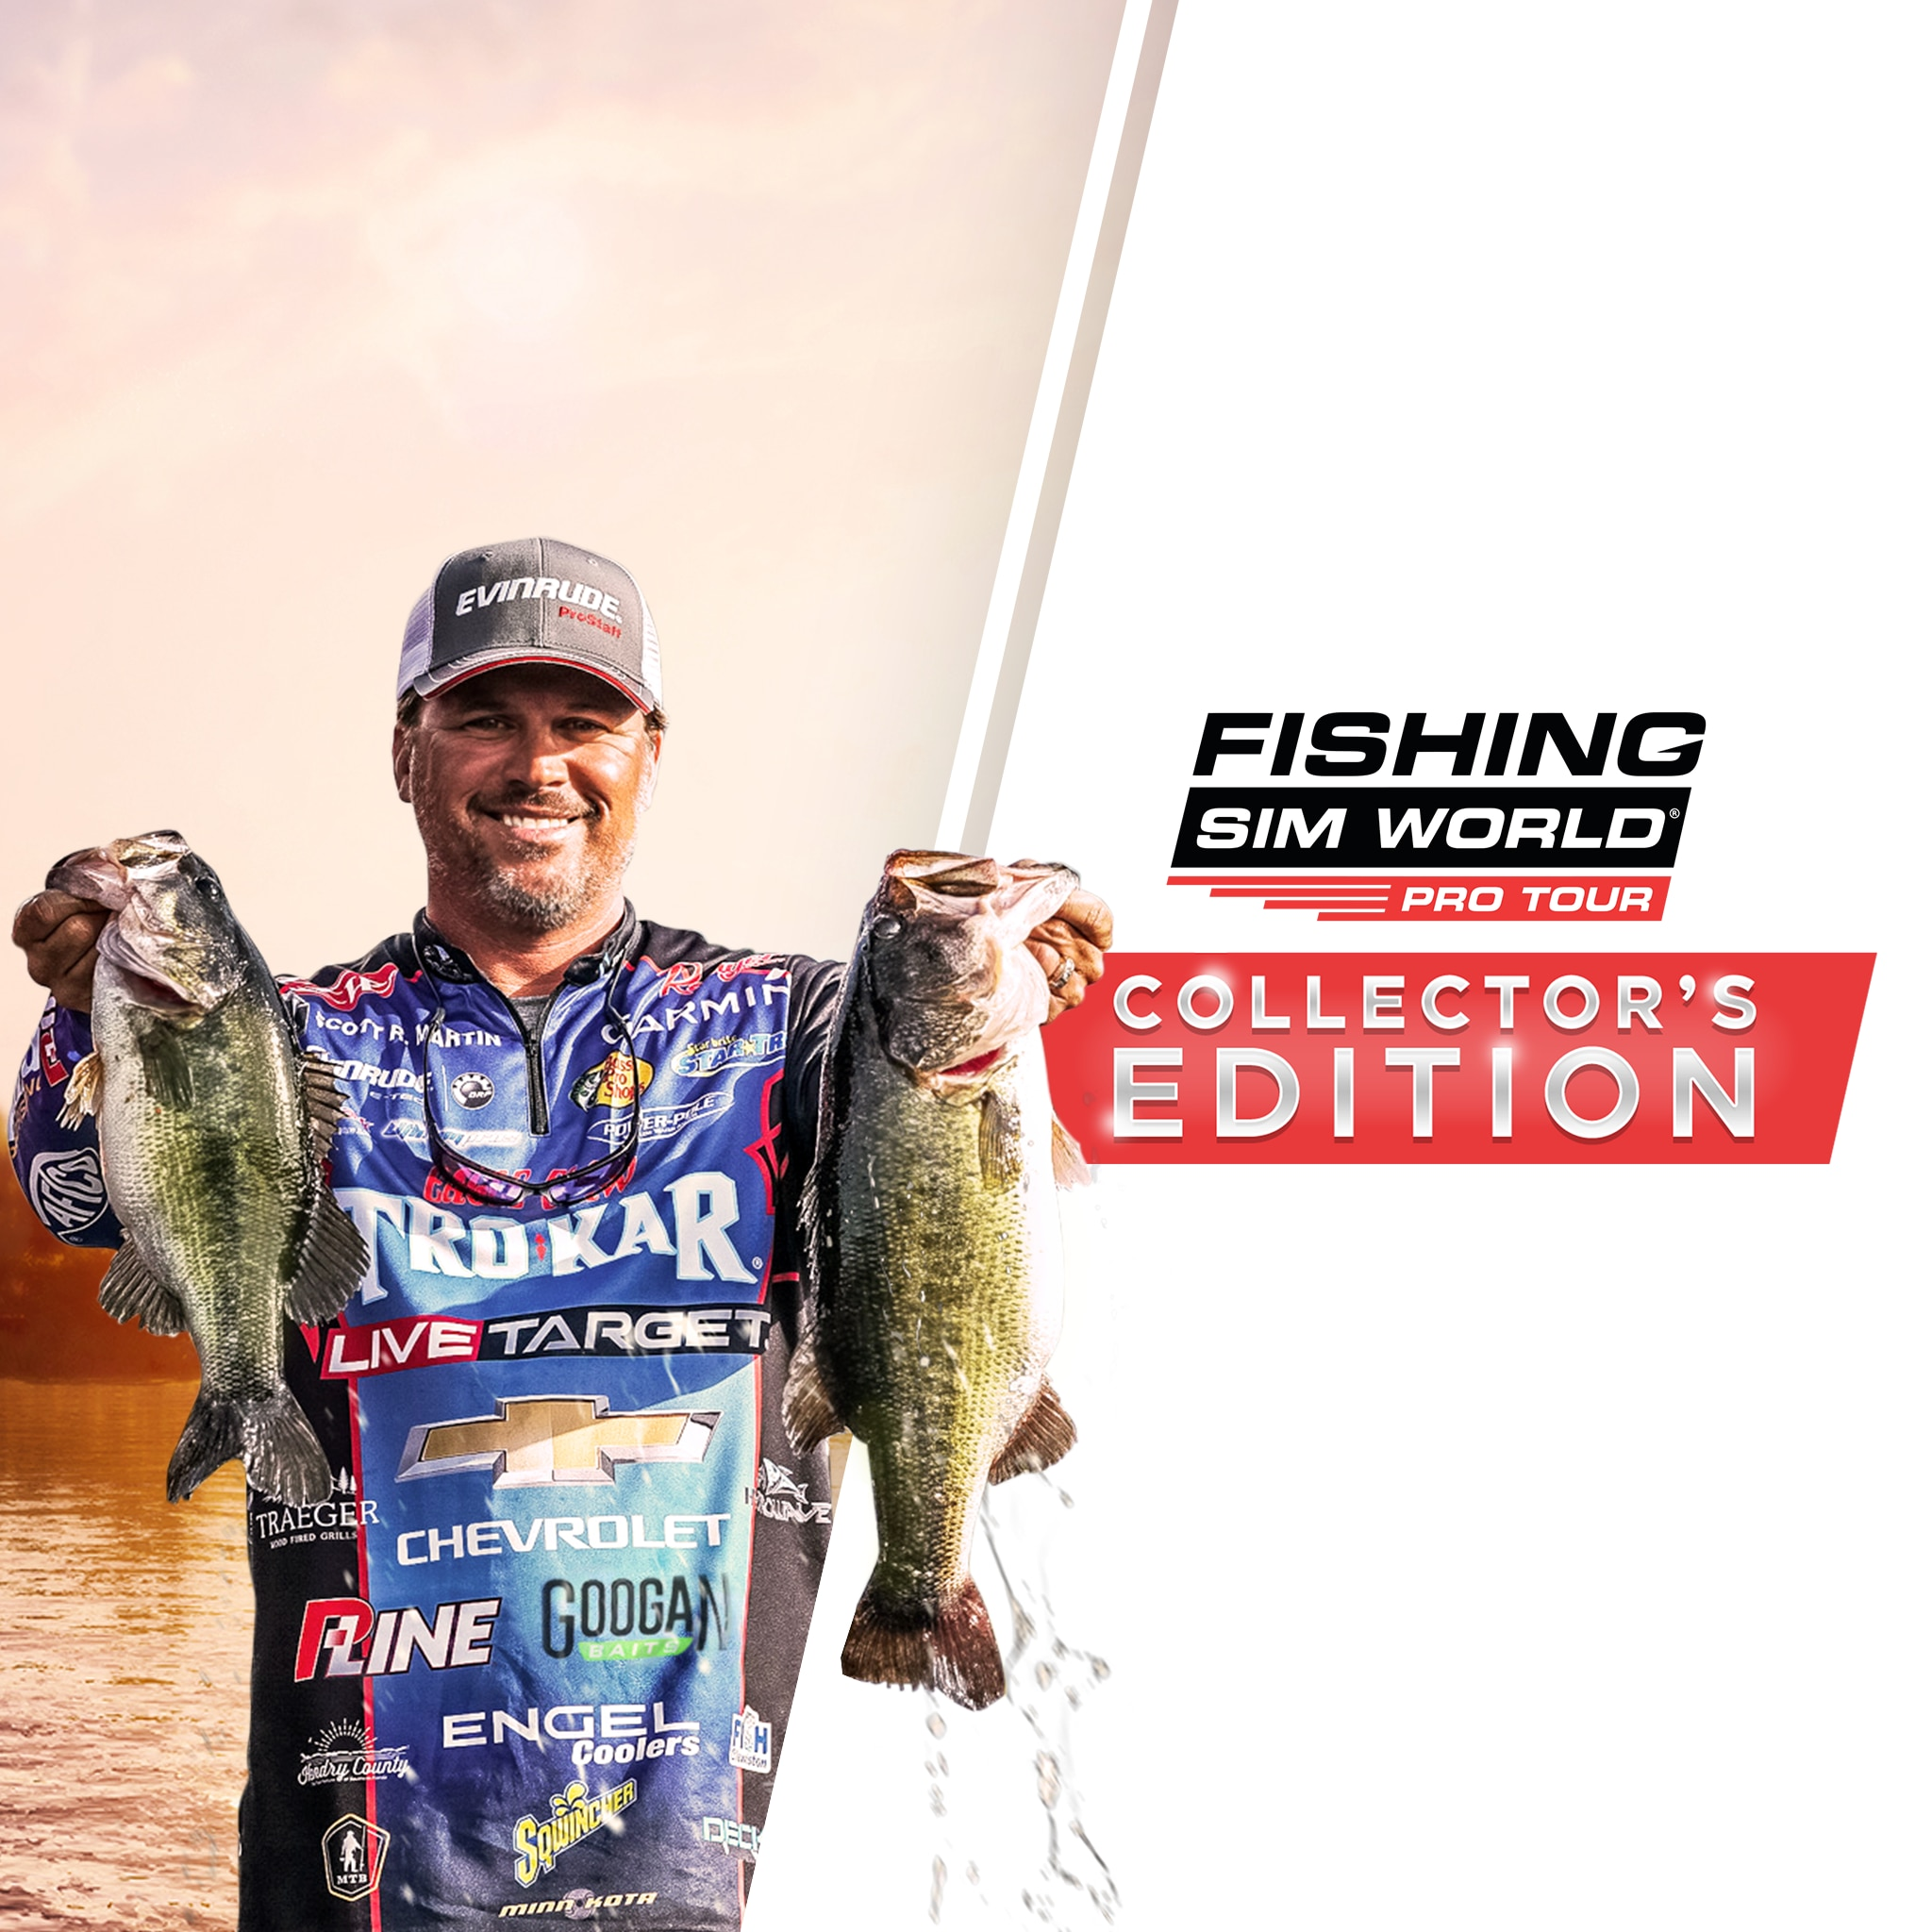 Fishing Sim World®: Pro Tour - Collector's Edition